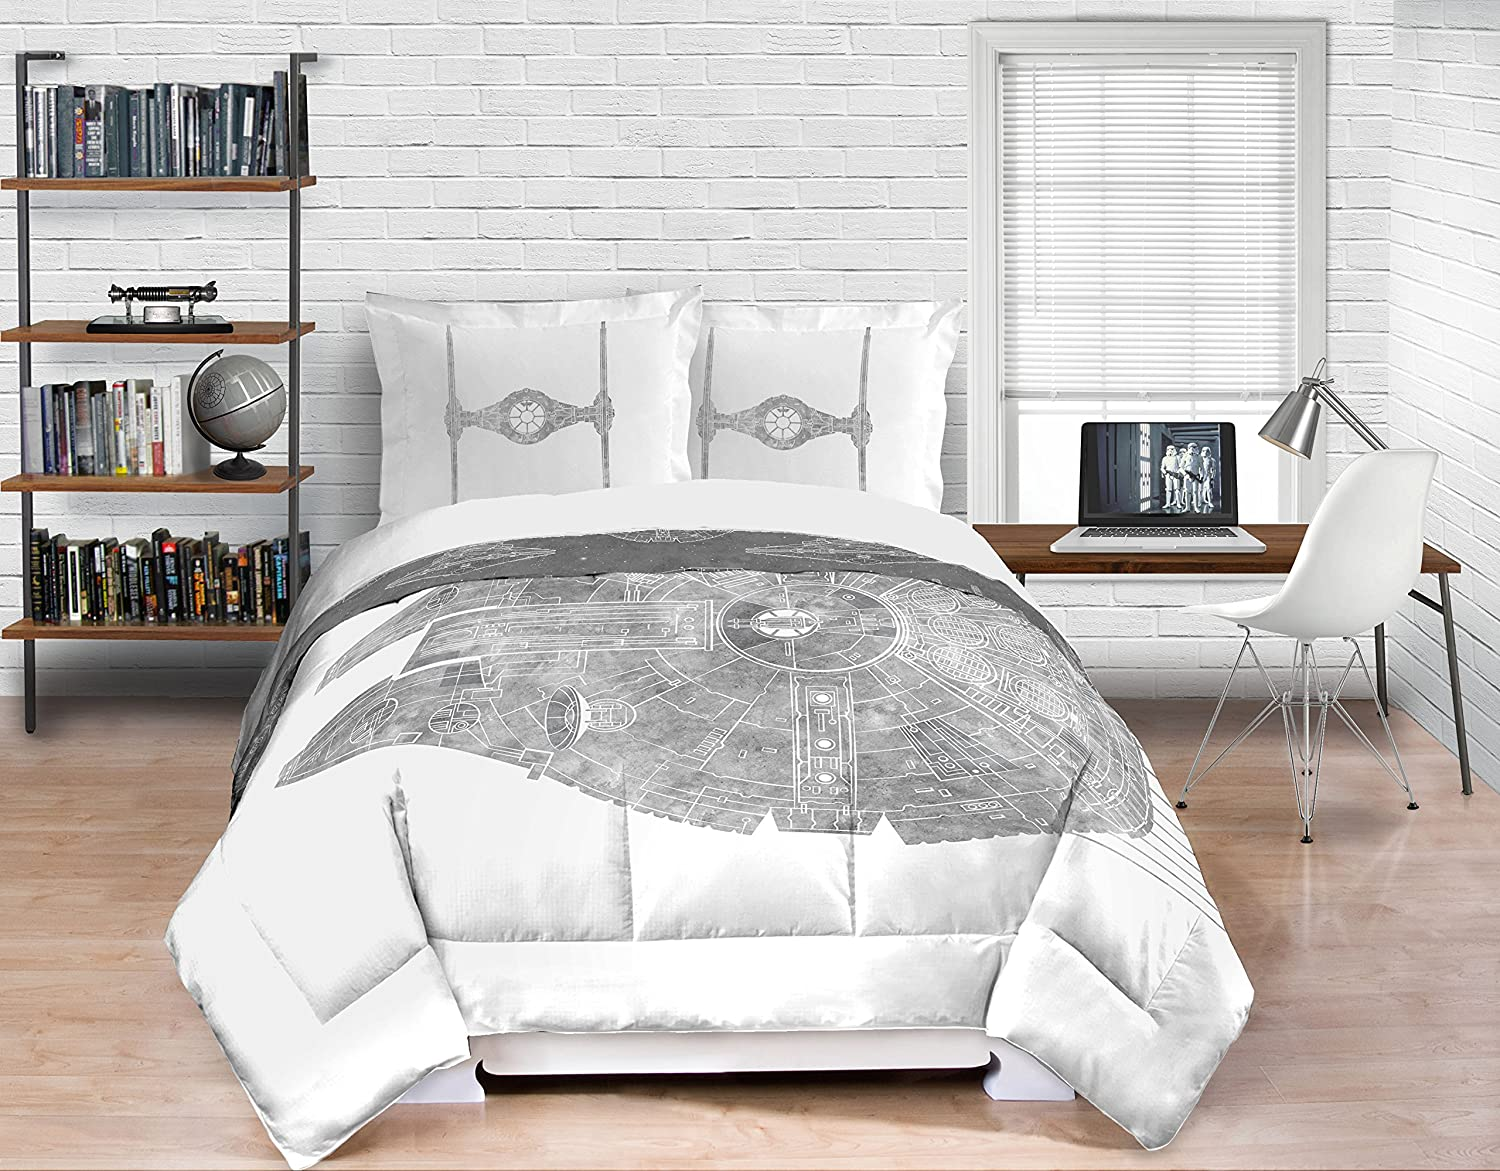 il sha comforter gallant dk queen widheiop sheets twin movie darth galleries best s full wars vader deals zenkai msexta bedding kohls swish starwars set nice ondeals star